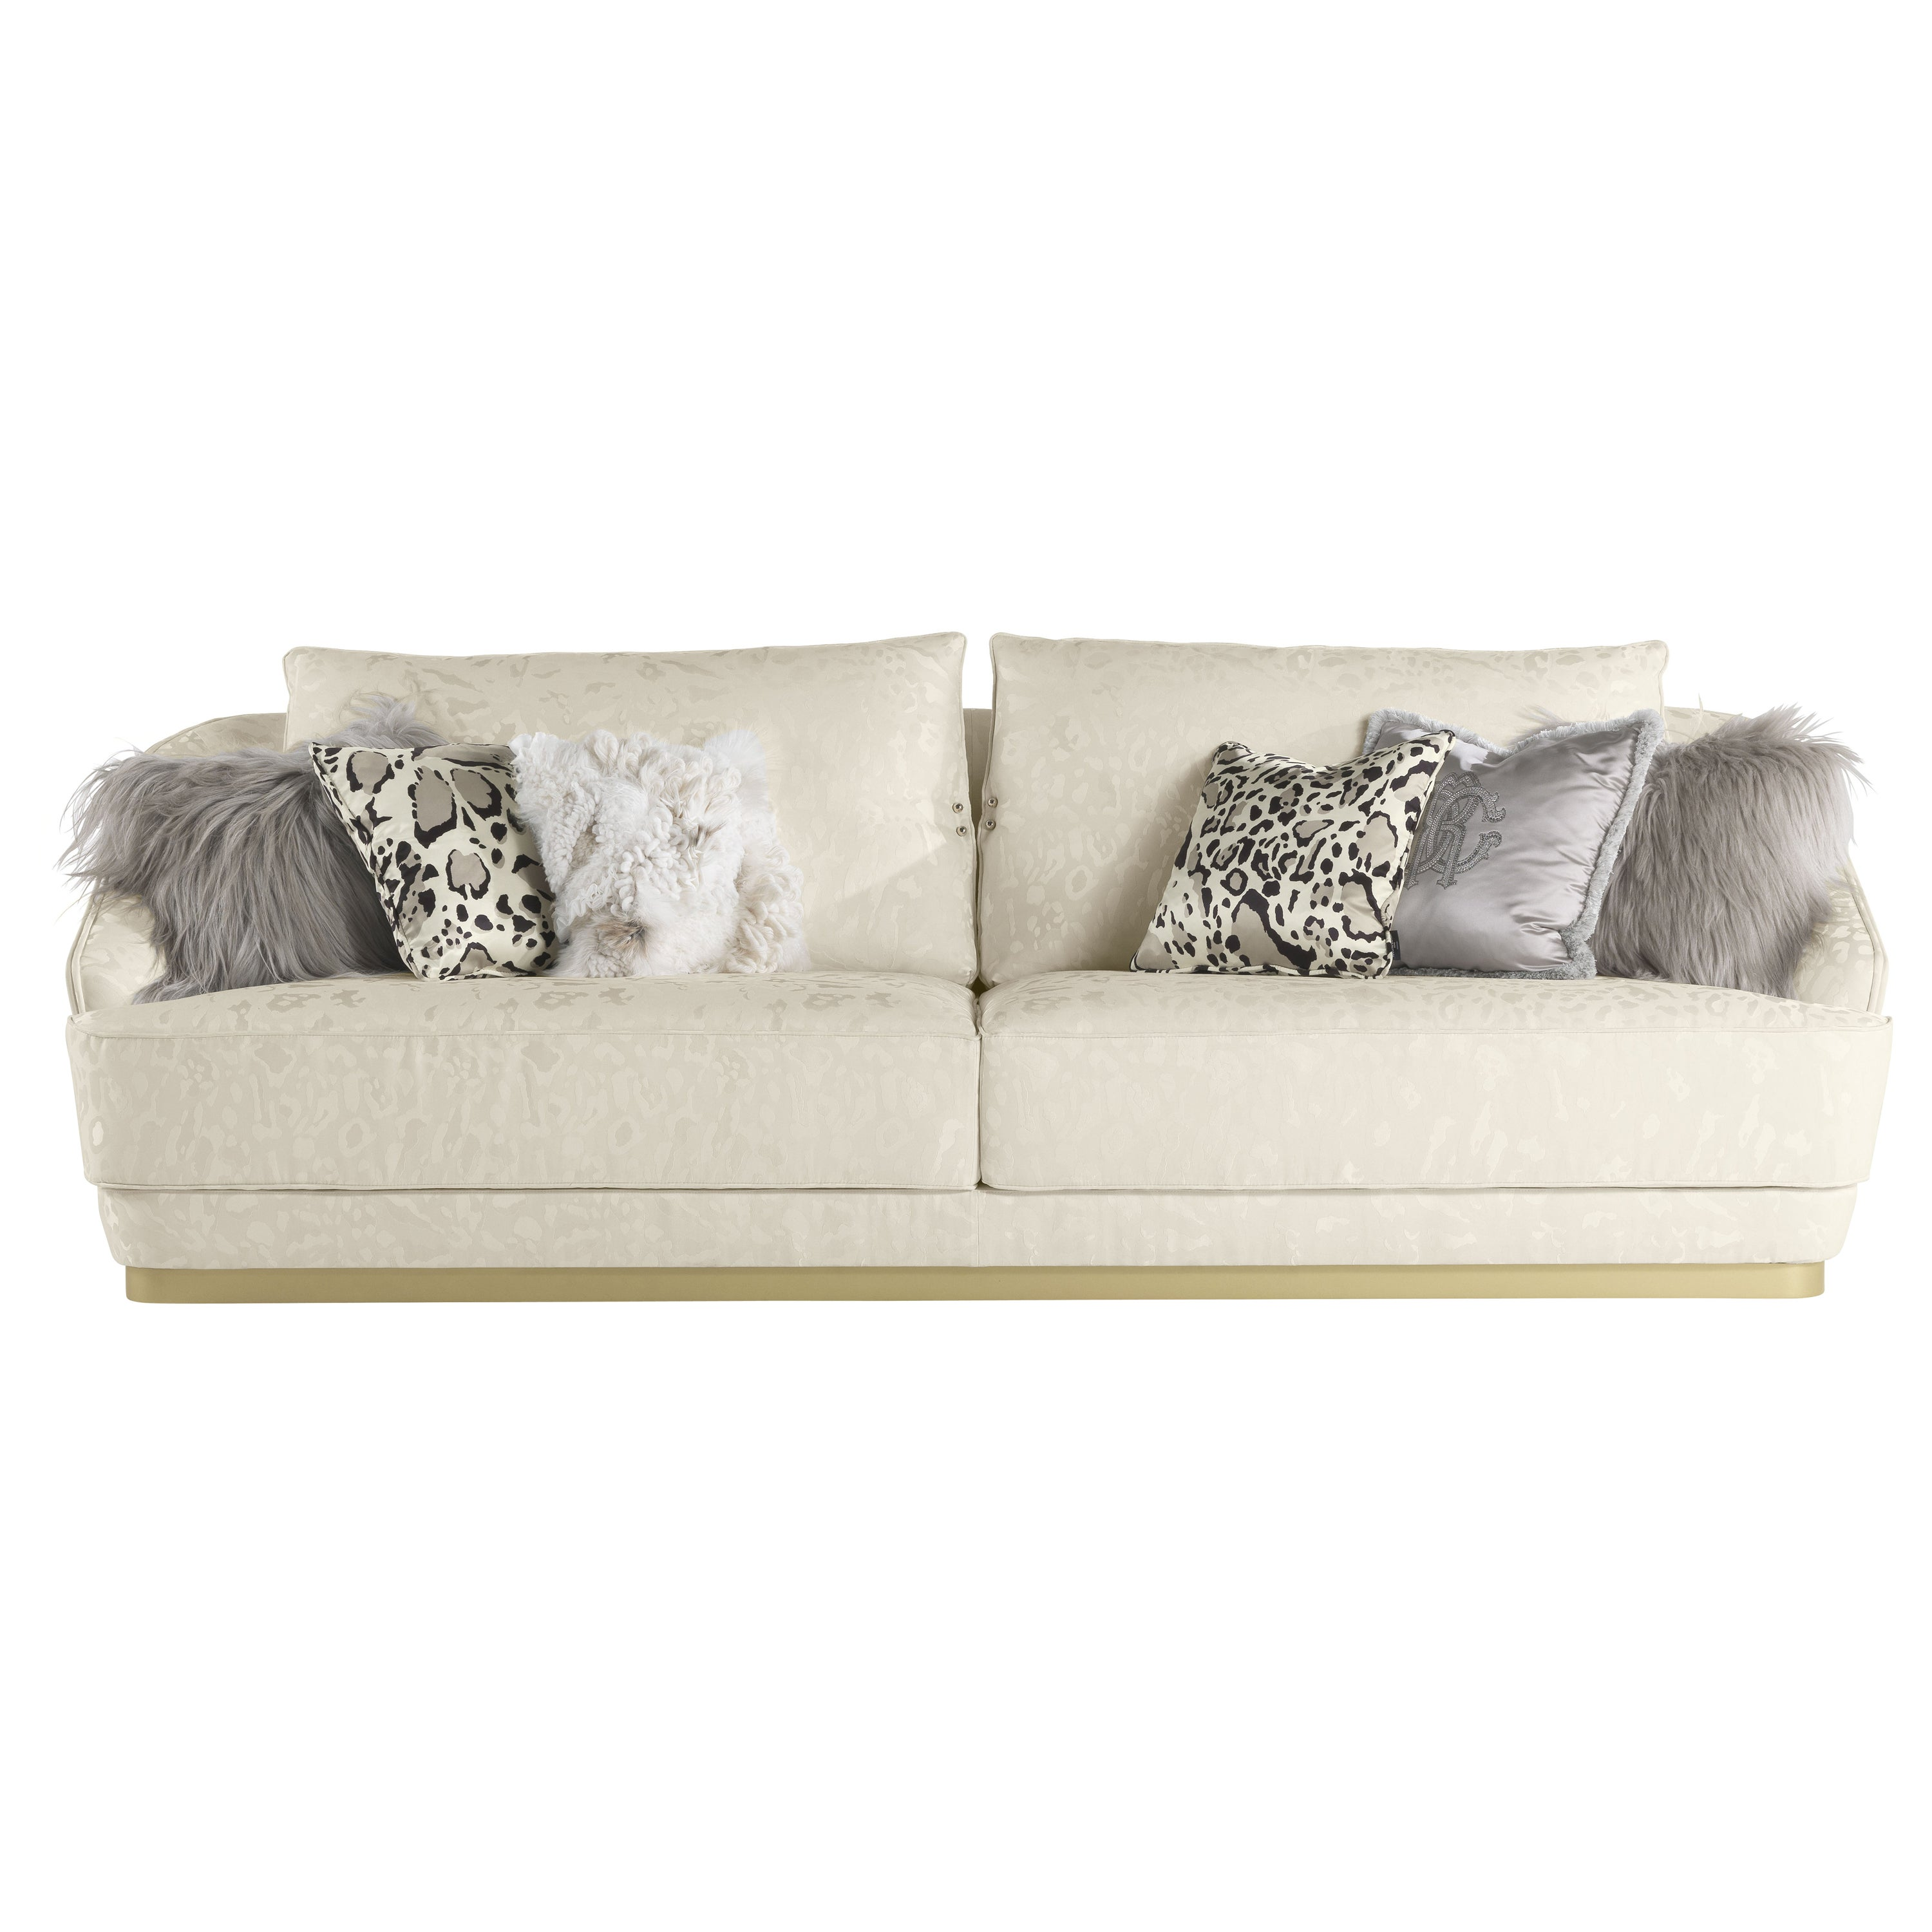 Inanda 3-Seater Sofa in Fabric and Leather by Roberto Cavalli Home Interiors